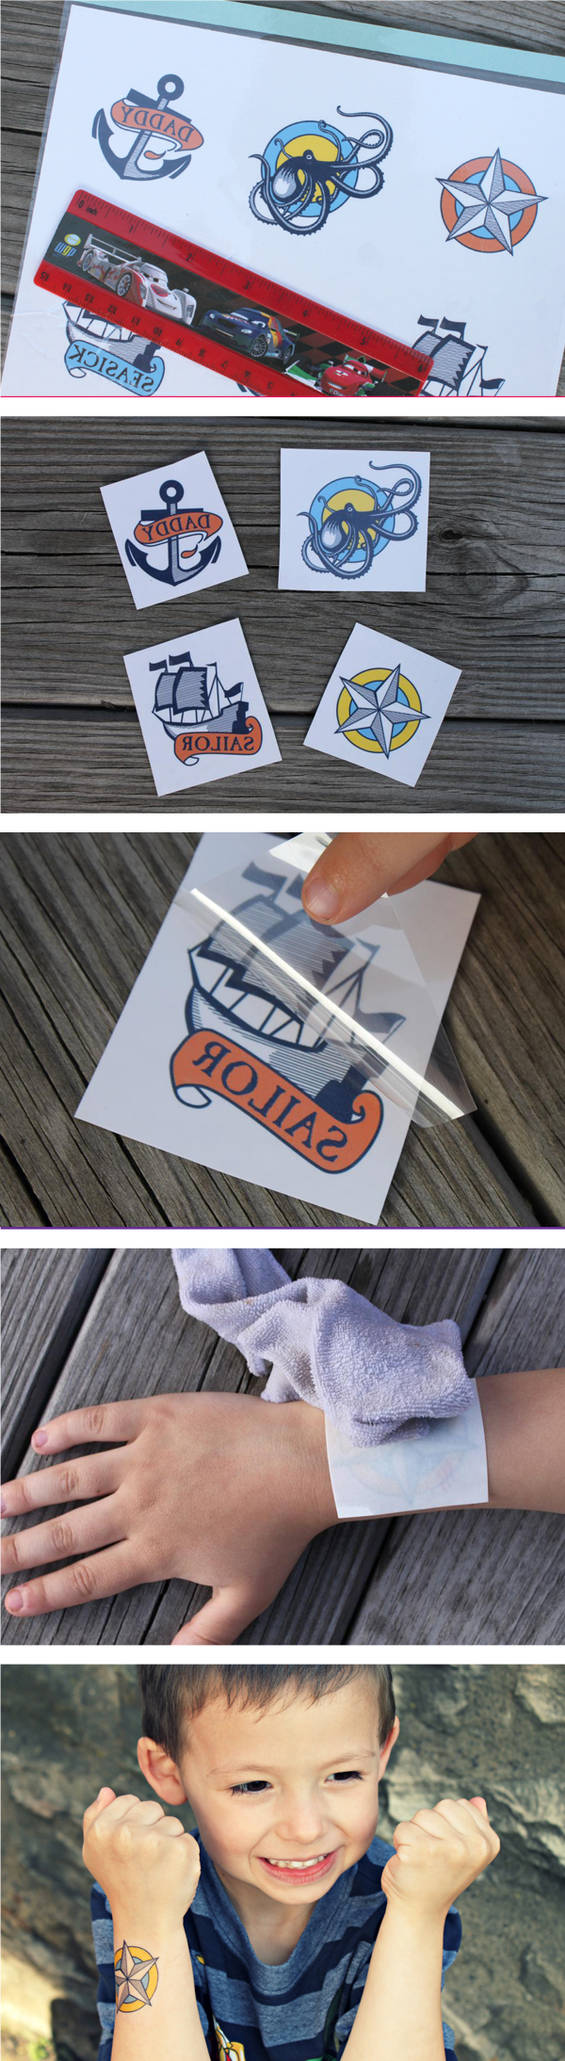 Design your own temporary tattoos!